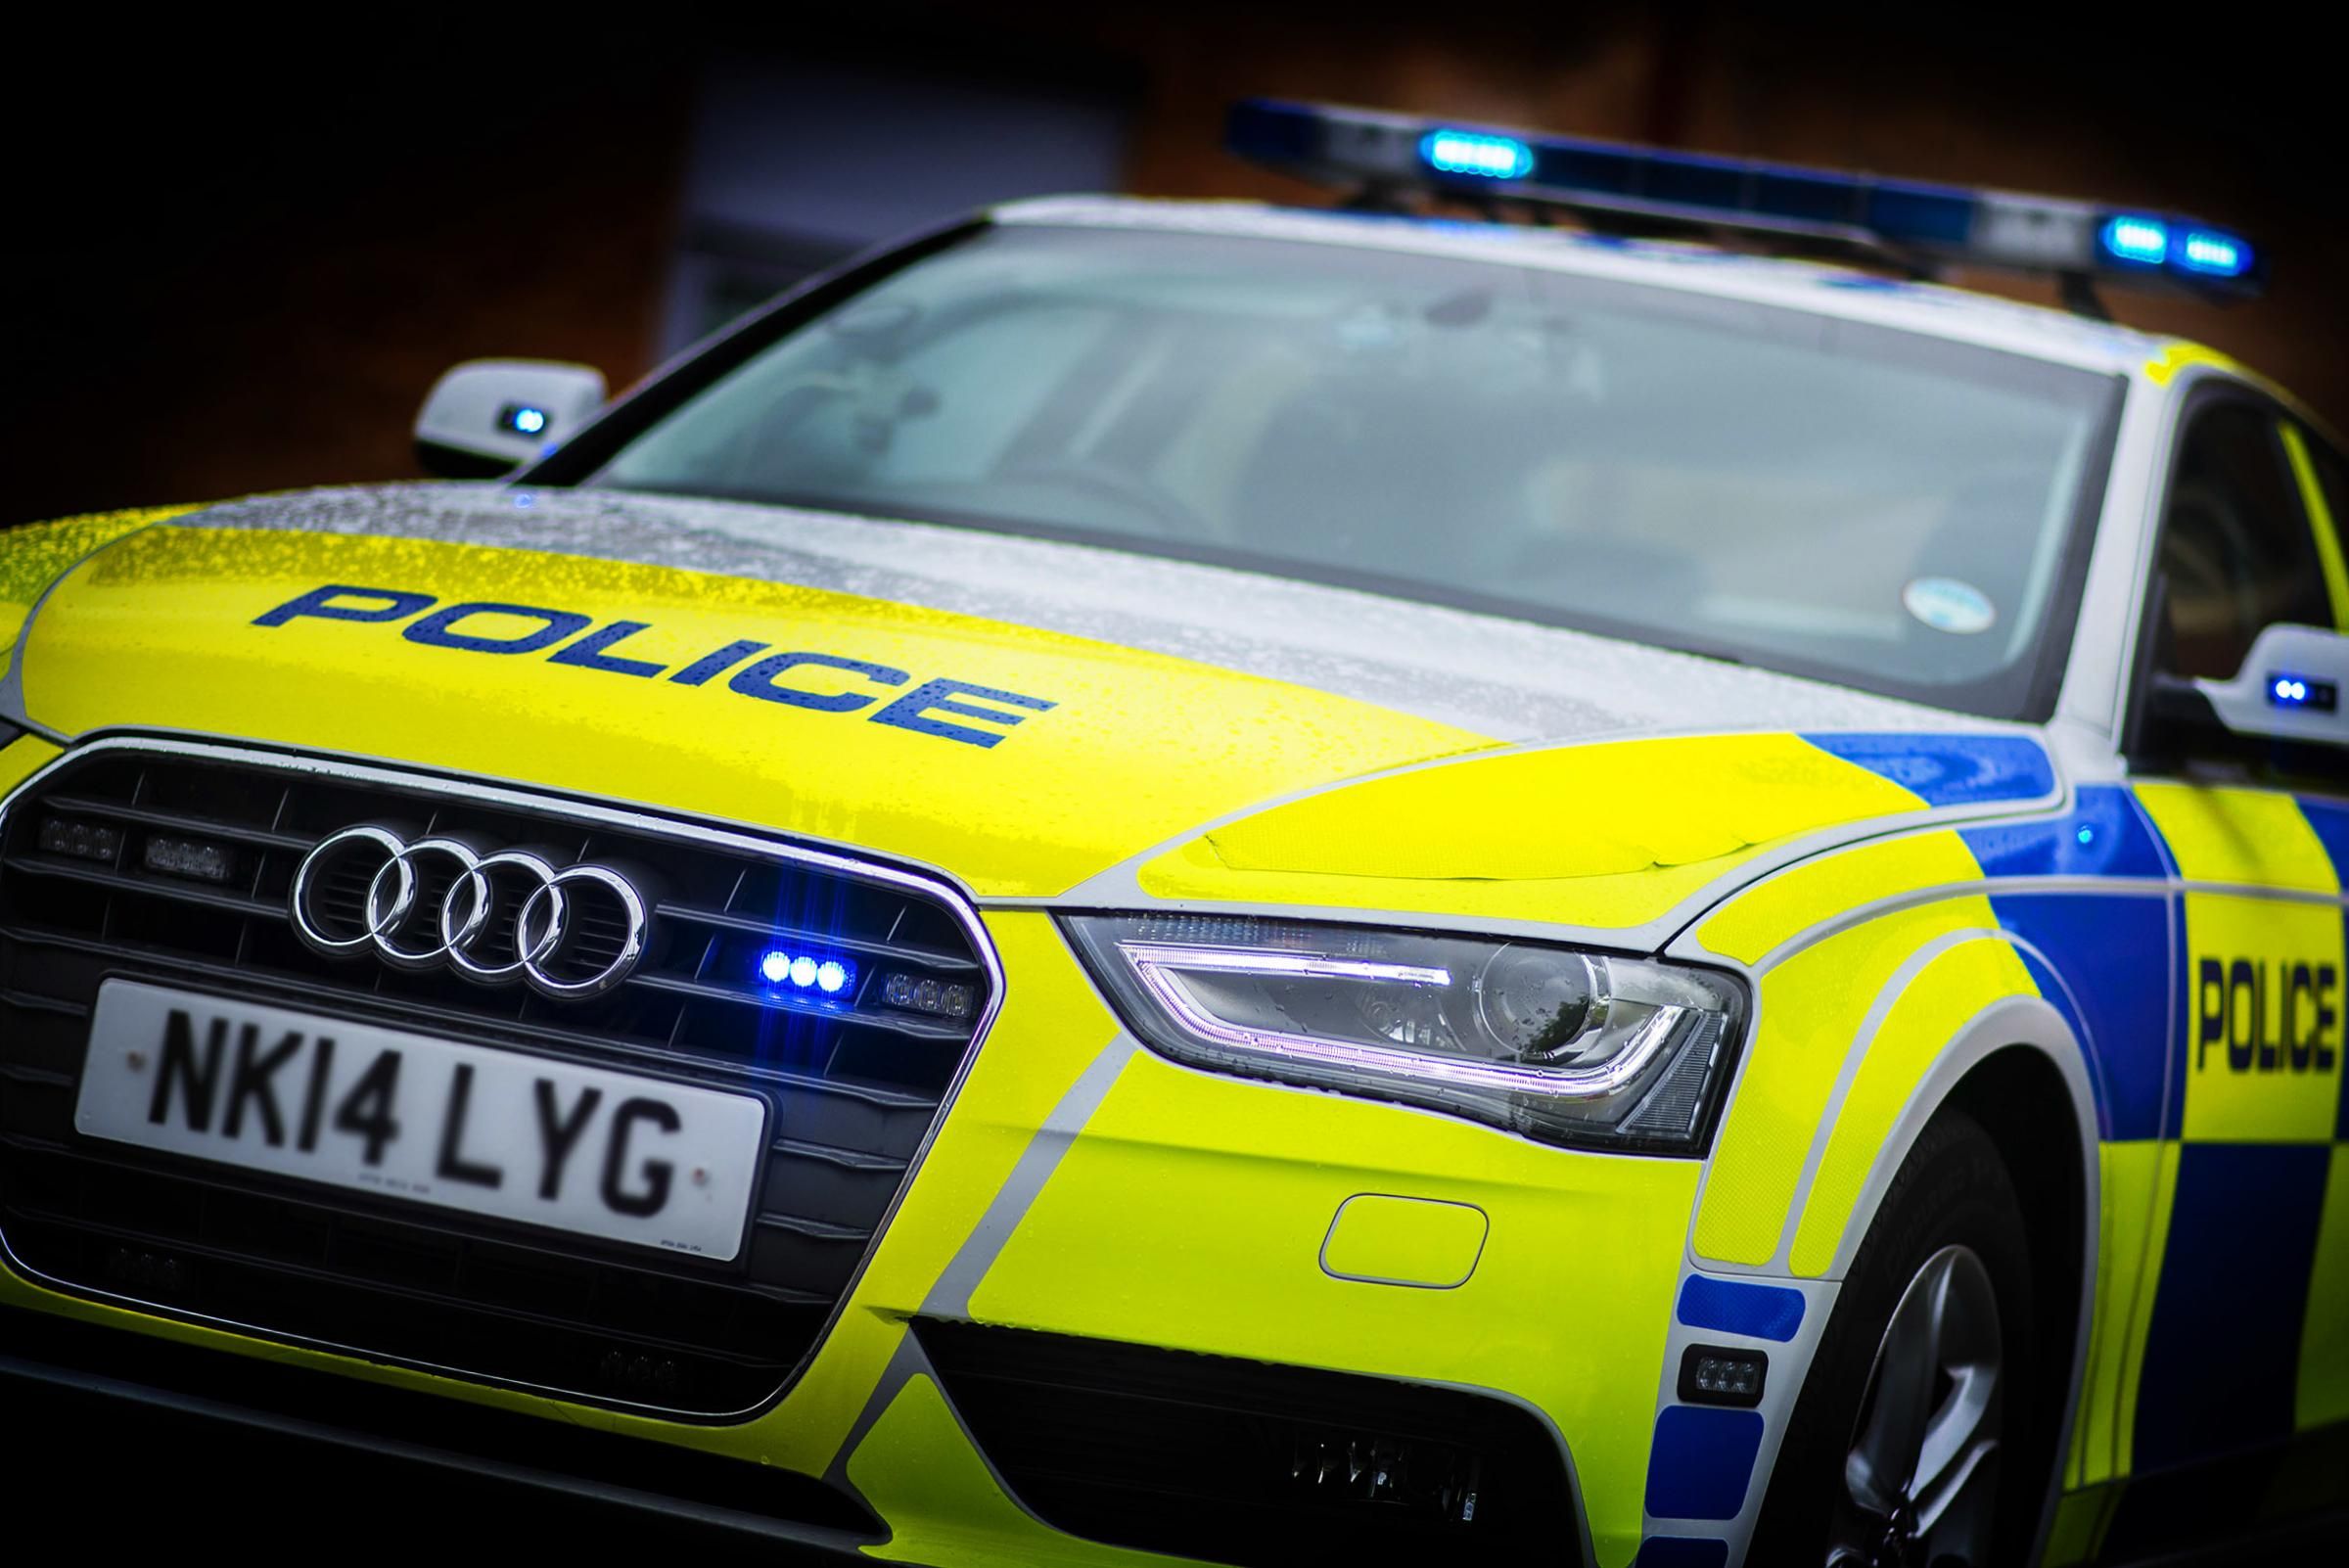 Police driver not to blame in Fife police car crash